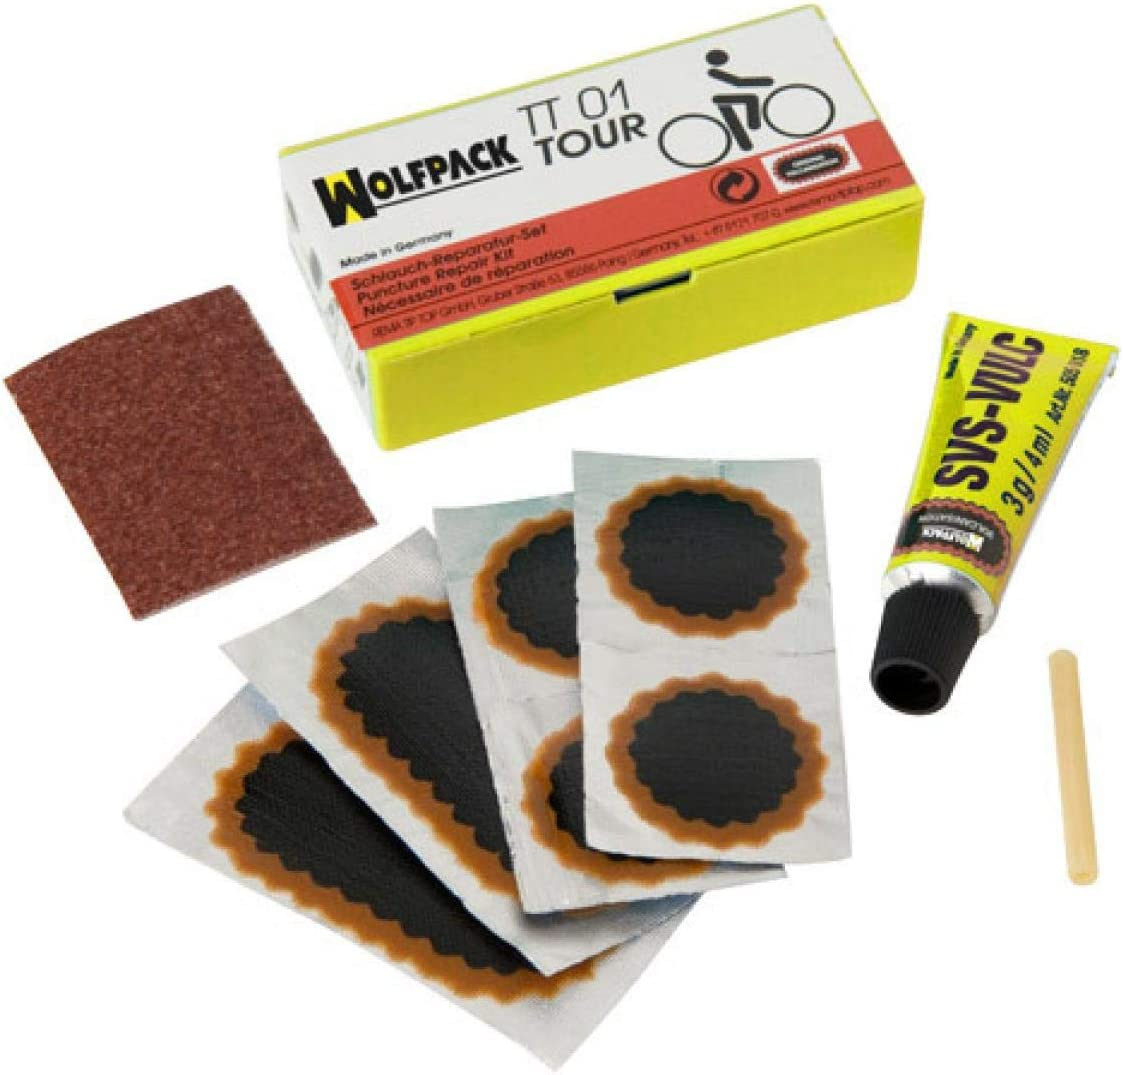 WOLFPACK LINEA PROFESIONAL 2323495 Parches Bici Kit Completo ...